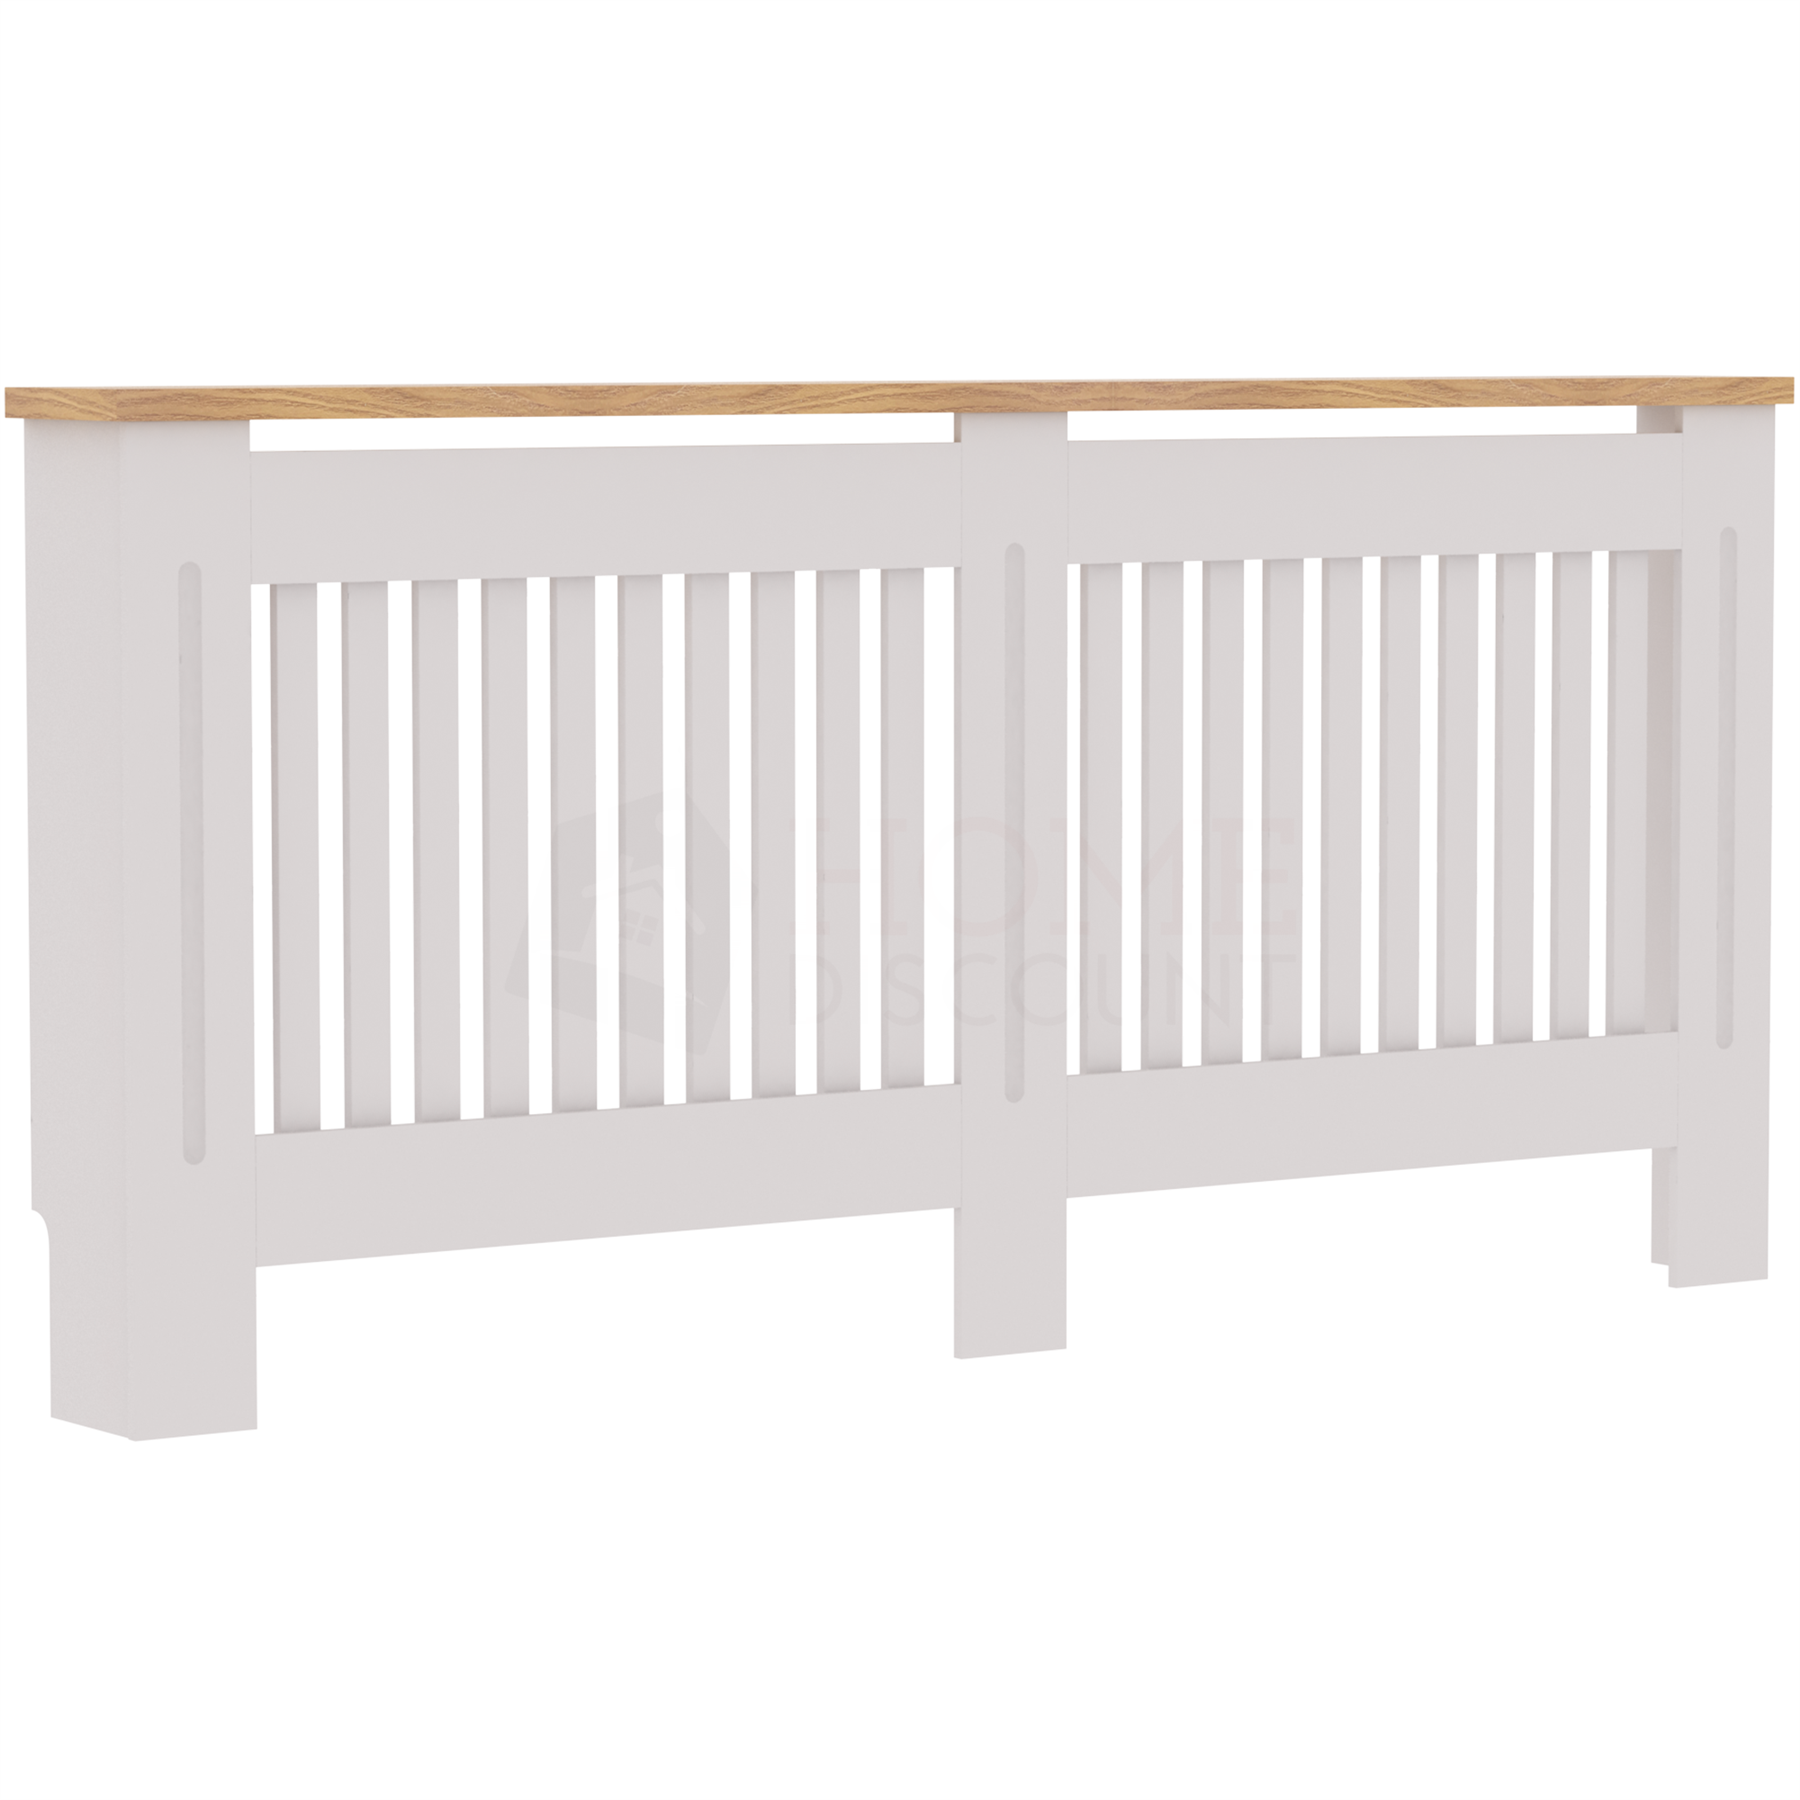 thumbnail 33 - Radiator Cover White Unfinished Modern Traditional Wood Grill Cabinet Furniture